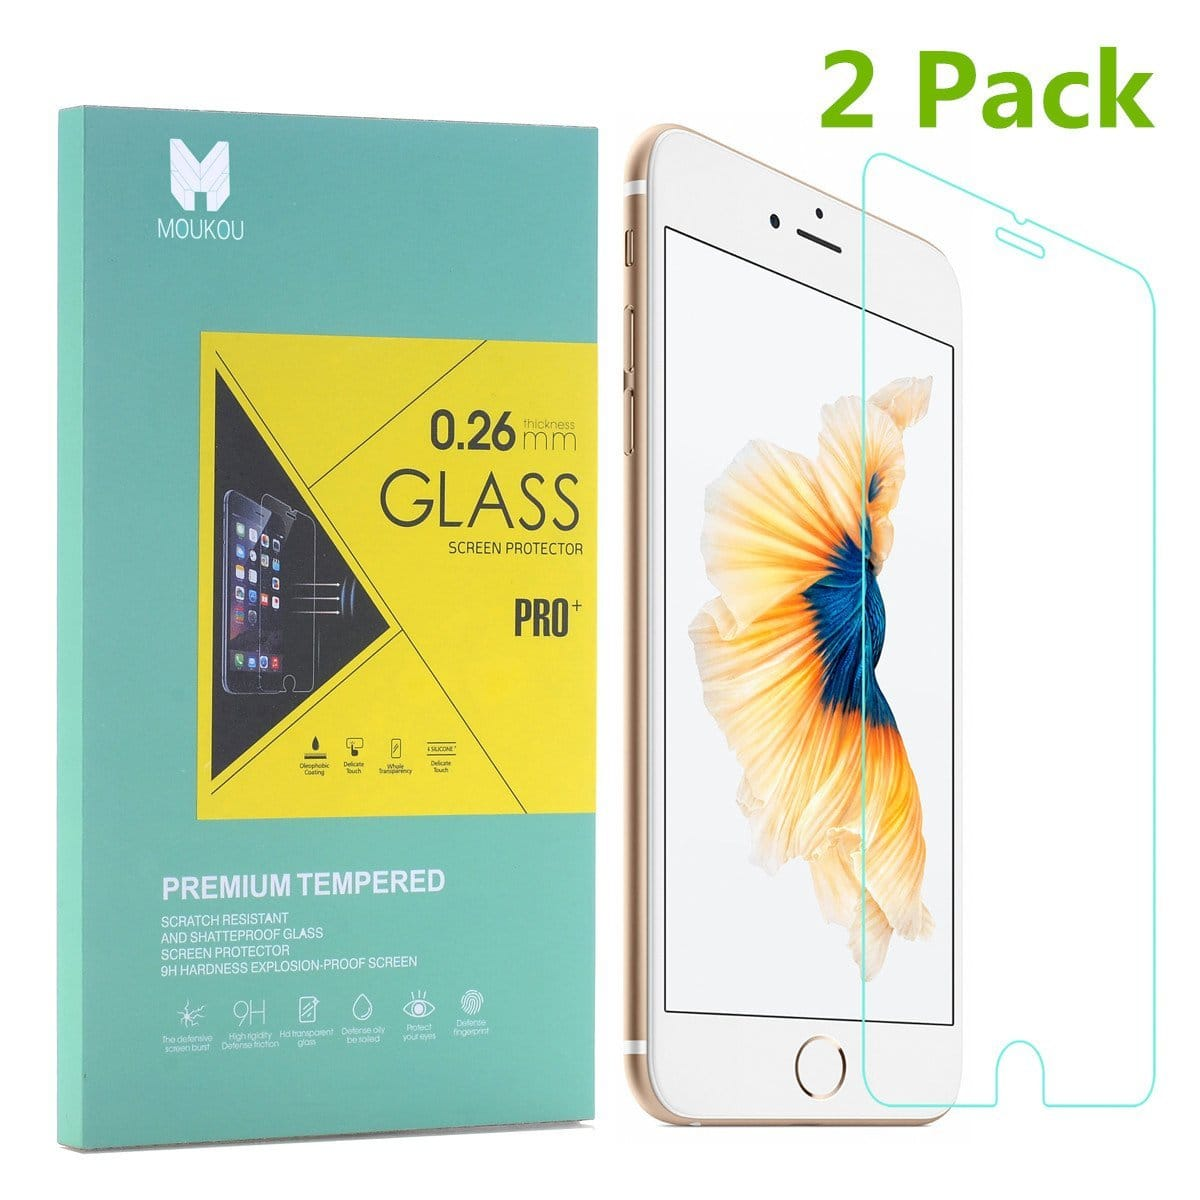 2-Pack MouKou iPhone 6 or 6s Tempered Glass Screen Protector $3 @ Amazon